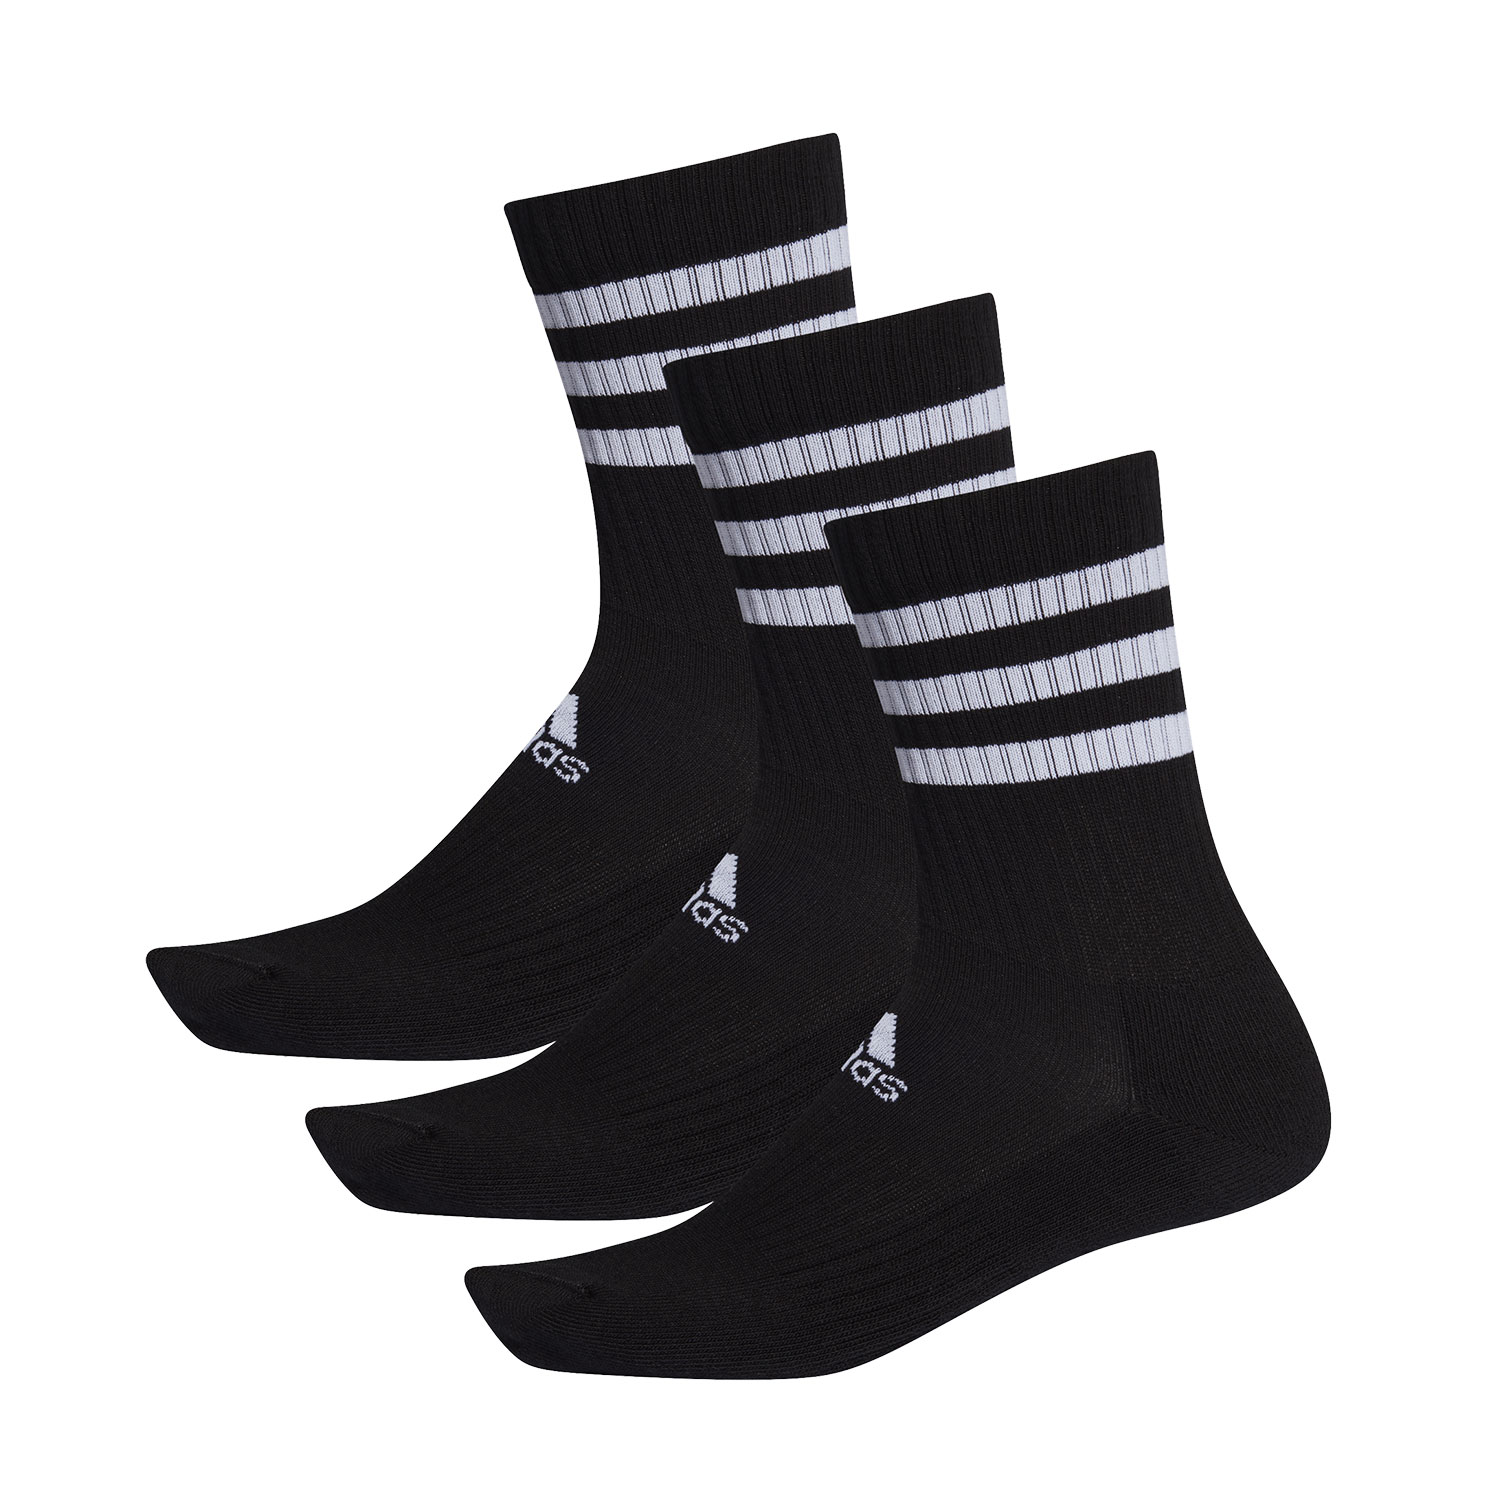 Adidas 3 Stripes Cushioned Crew x 3 Socks - Black